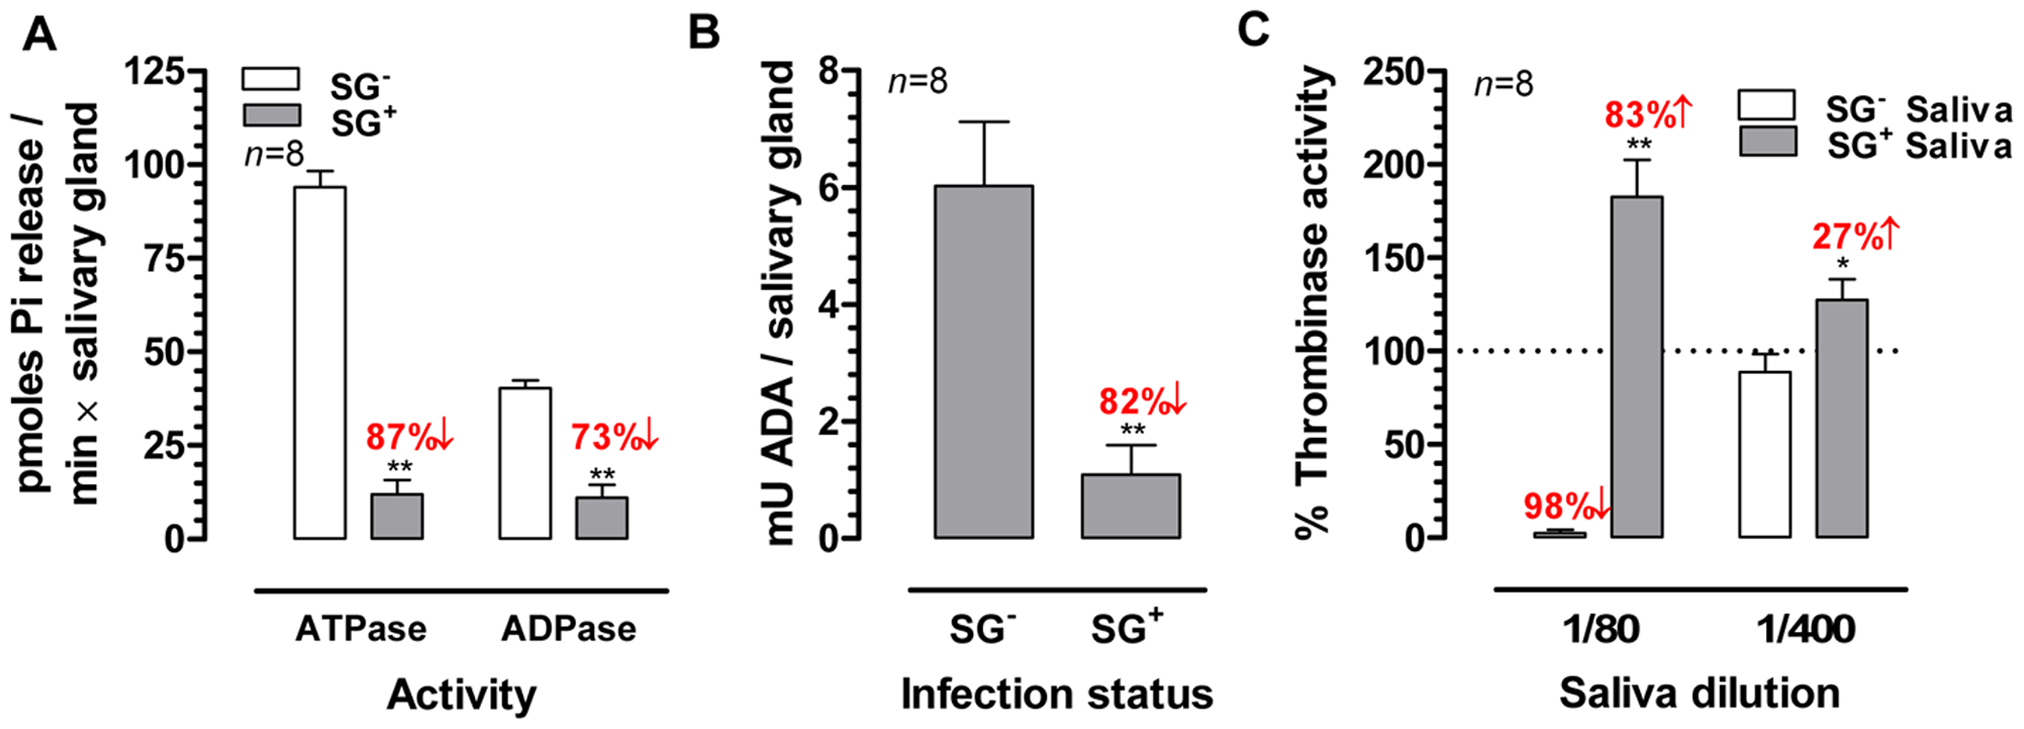 Effects of the <i>T. brucei</i> salivary gland infection on the biological activities of tsetse fly saliva.